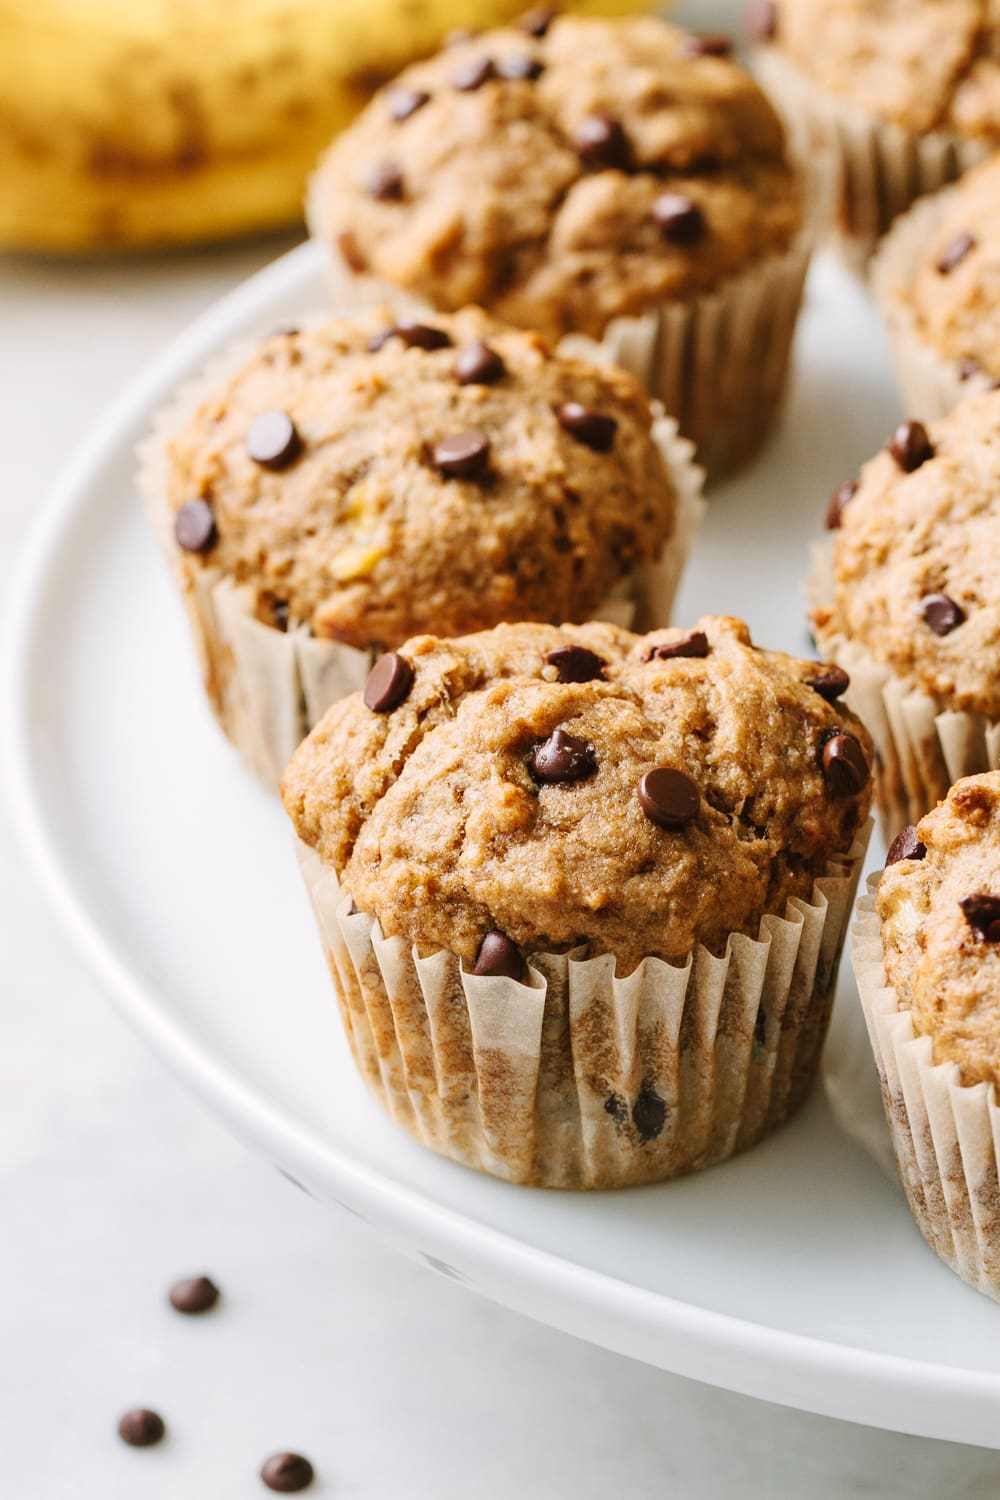 BANANA CHOCOLATE CHIP MUFFINS (HEALTHY) - THE SIMPLE VEGANISTA